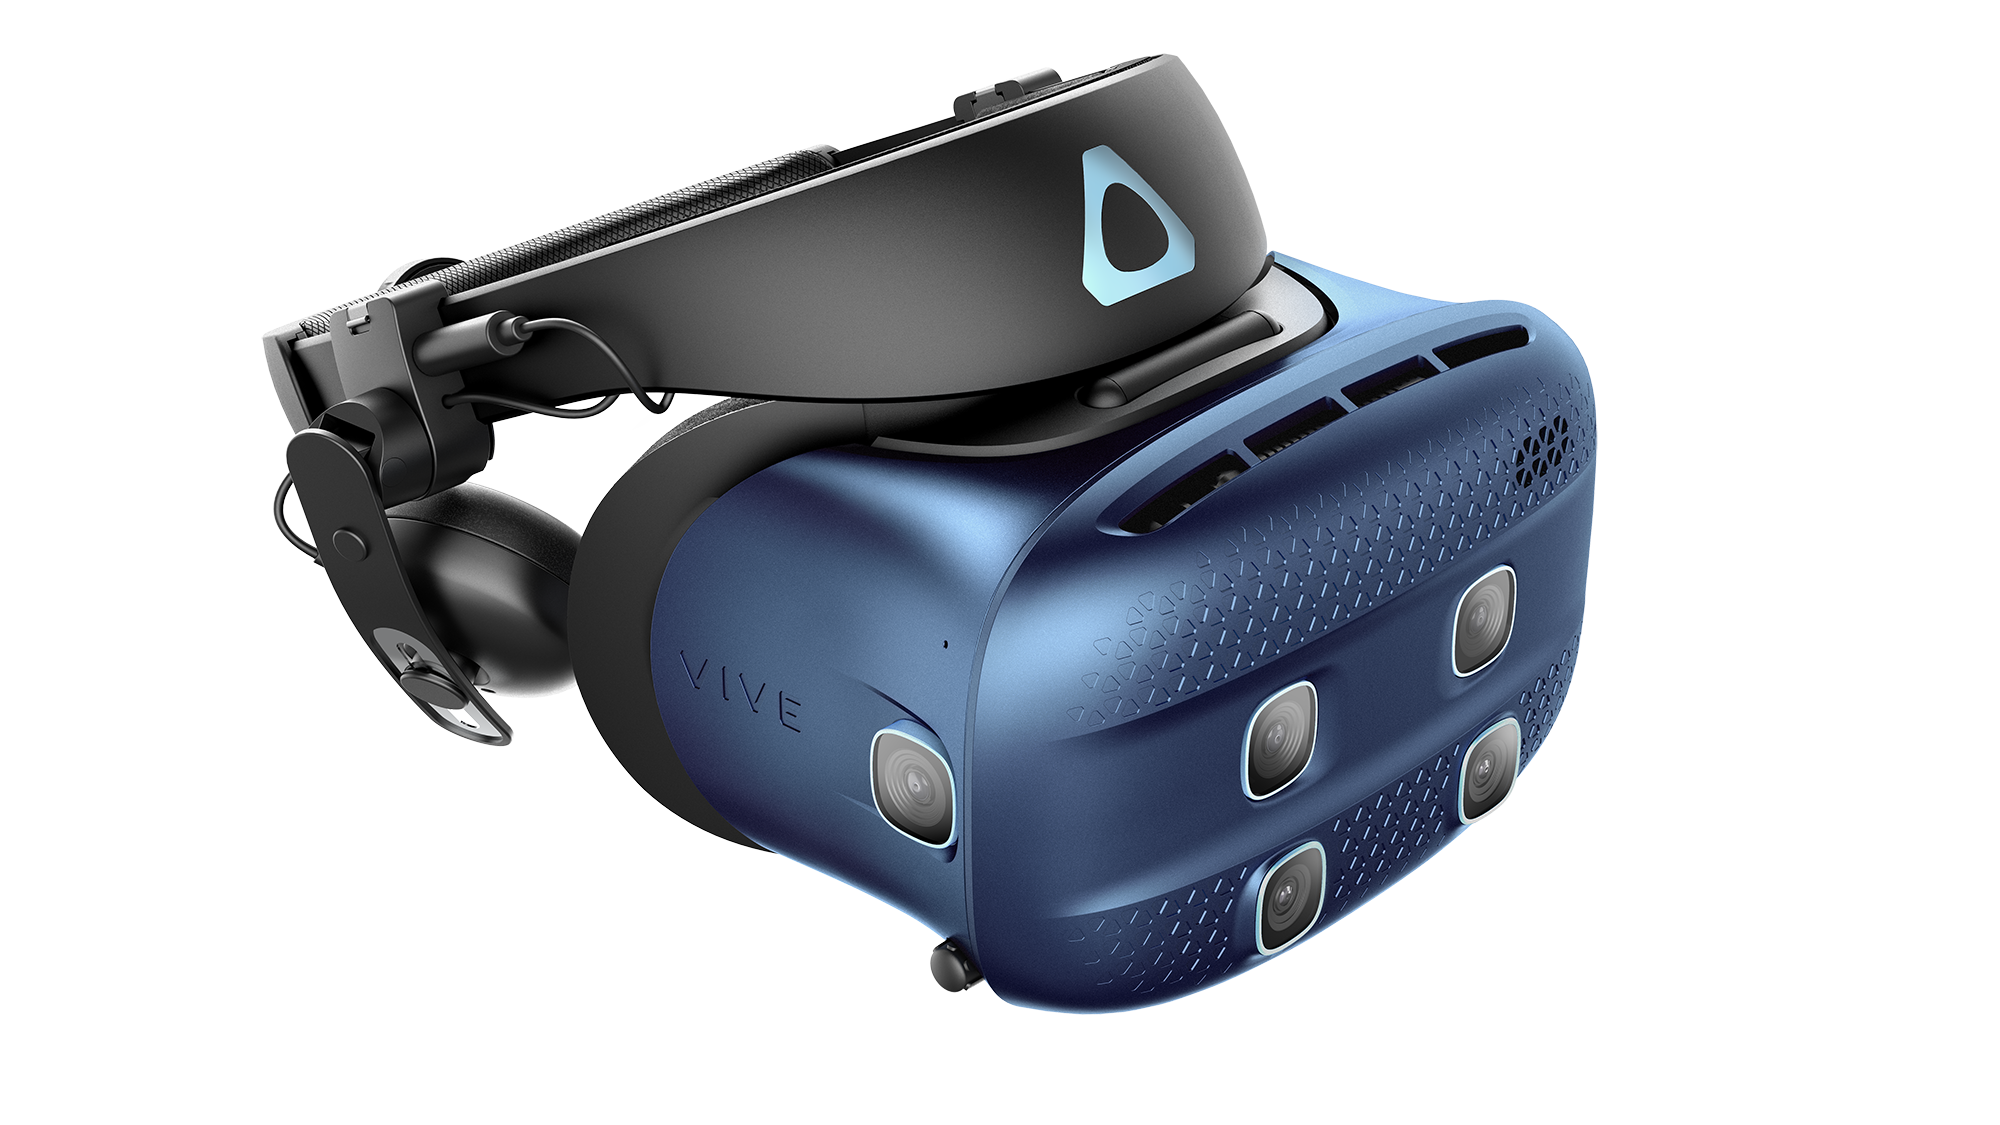 The VIVE Cosmos XR faceplate.